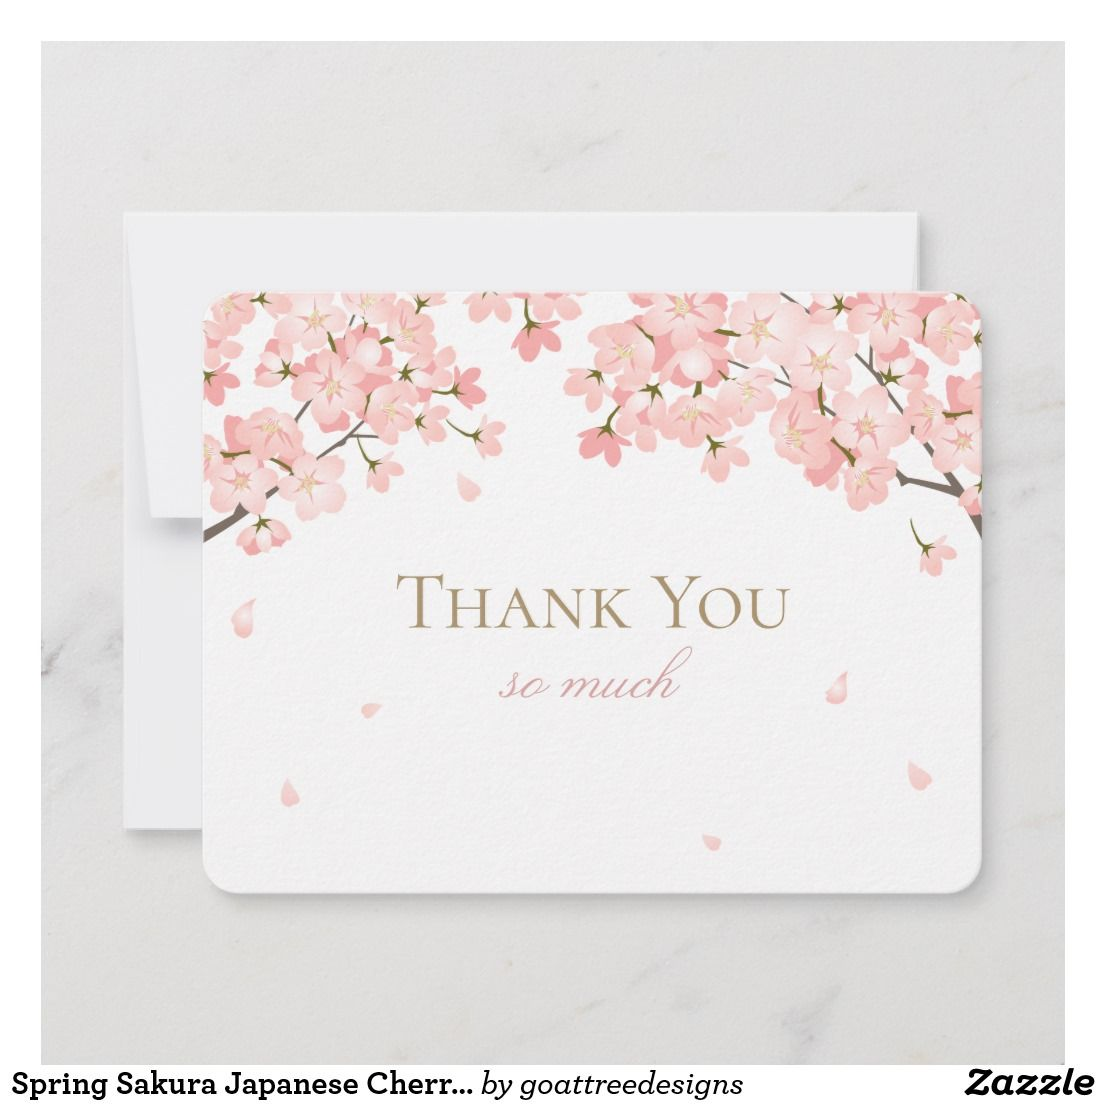 Spring Sakura Japanese Cherry Blossoms Pink Thank You Card Zazzle Com In 2021 Thank You Cards Diy Thanksgiving Cards Christmas Card Crafts